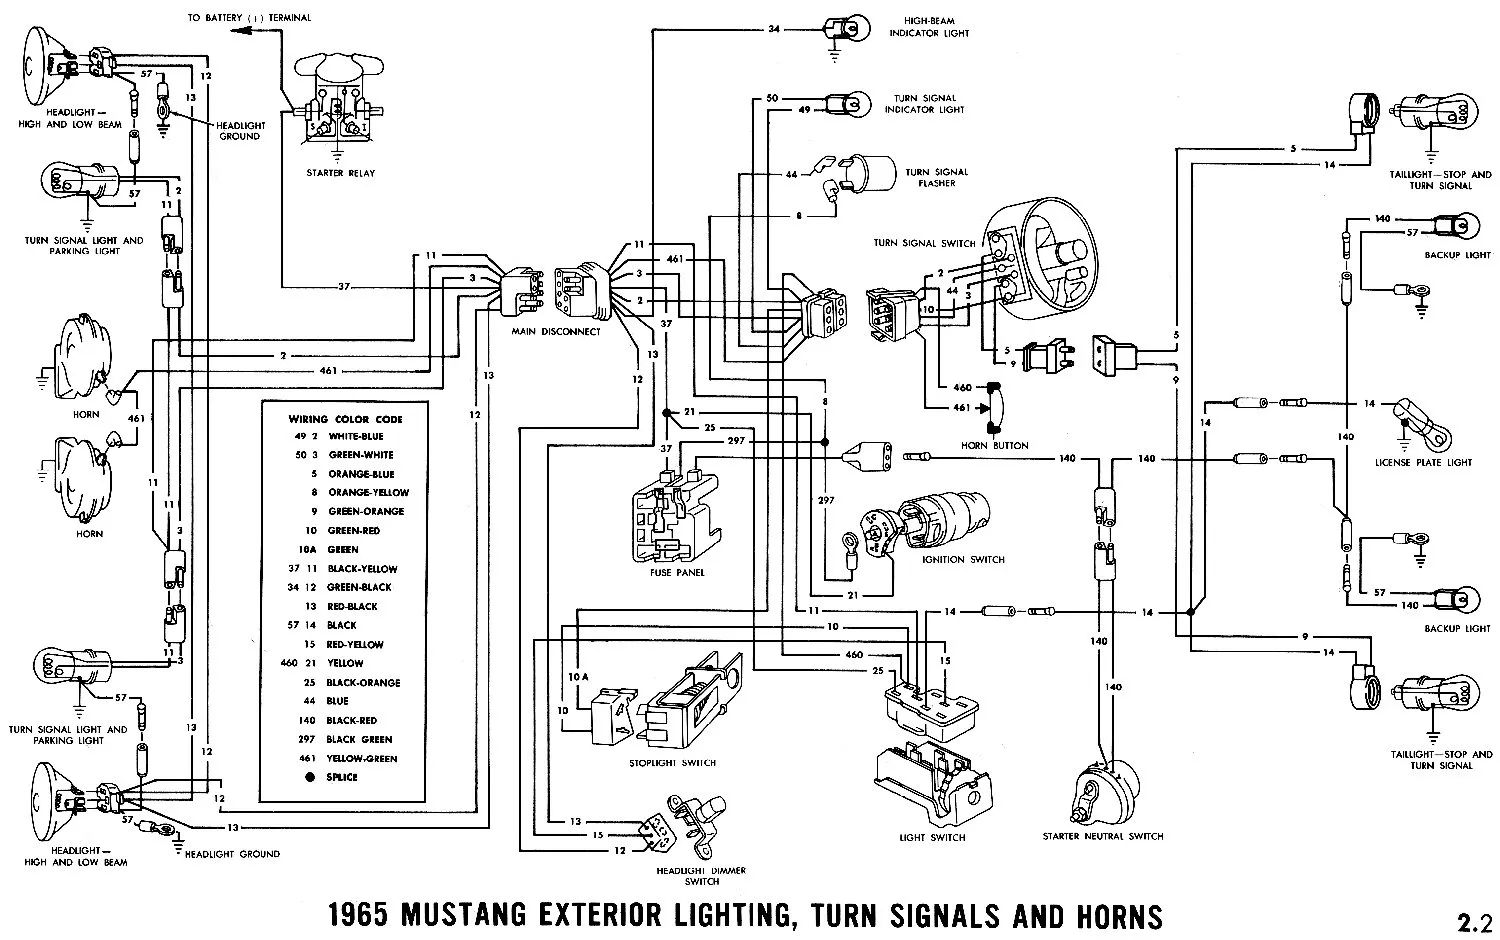 daytona instruments speedo wiring diagram